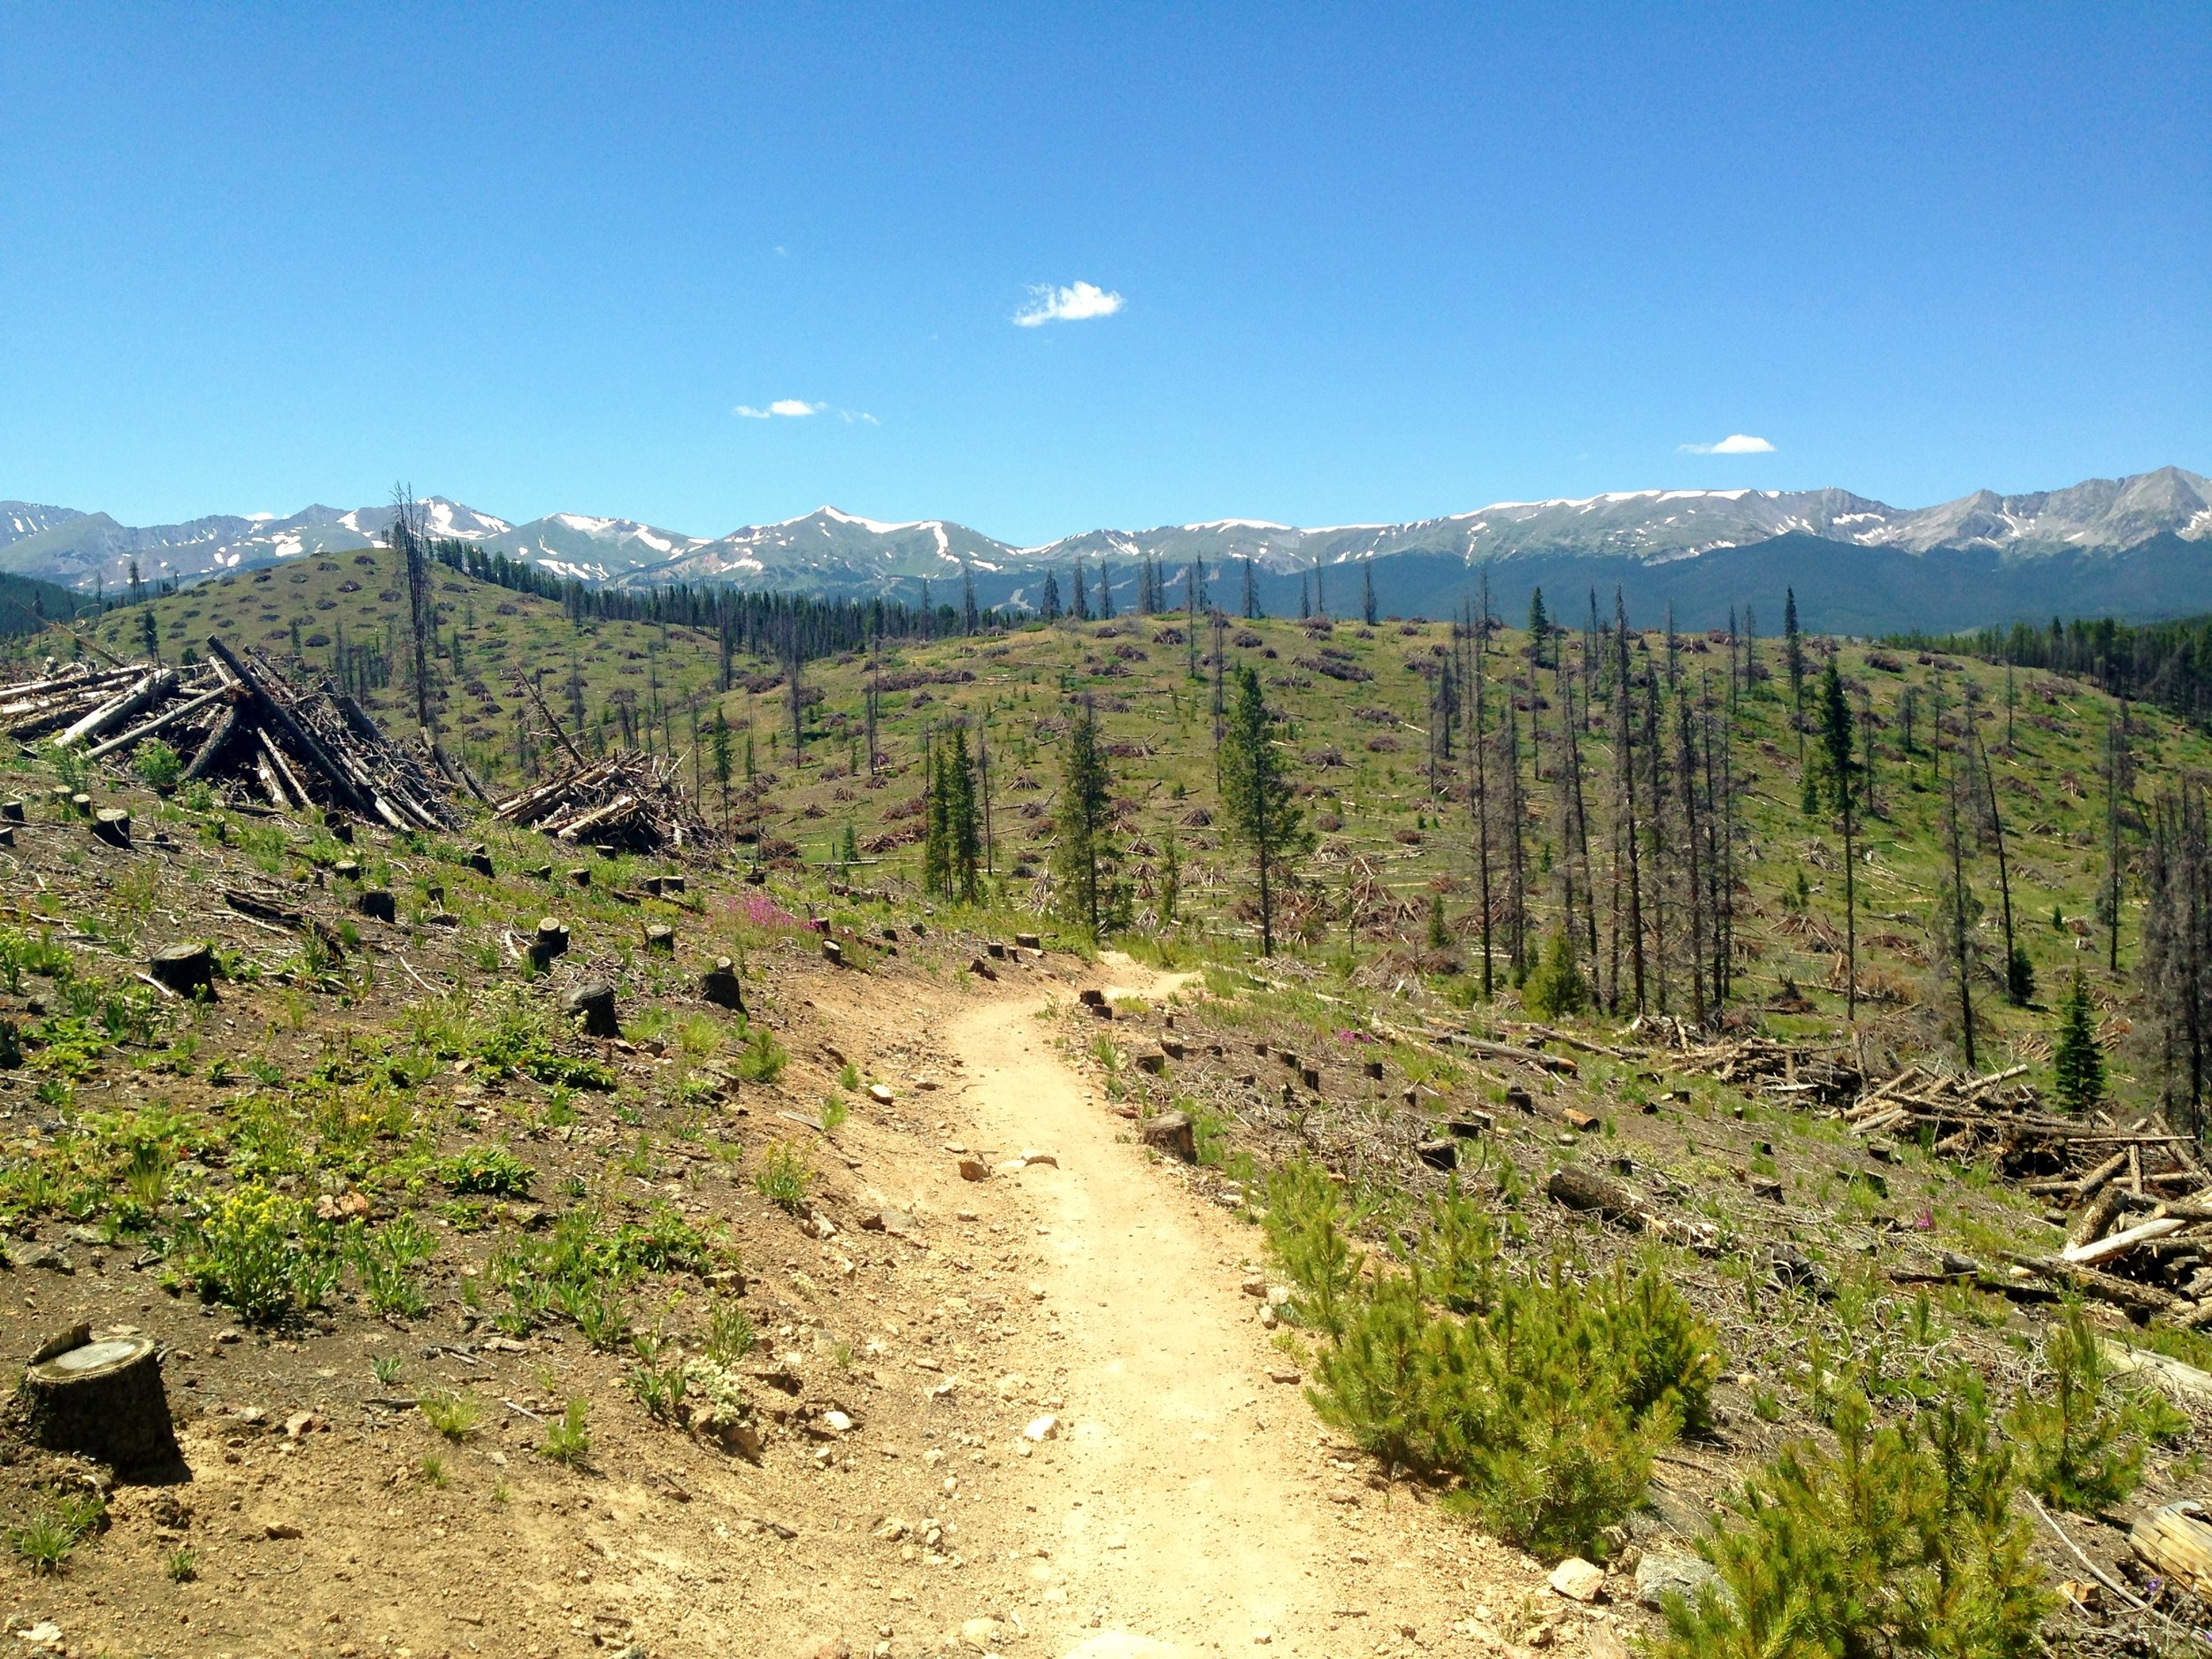 Day 8:  There's so much beetle kill outside of Breckenridge in Segment 6, but they're doing a great job of forming slash piles for controlled burns. Beetles are ravaging our spruce forests right now. I was shocked at how pervasive it is across Colorado, and especially along the CT. (cont'd)